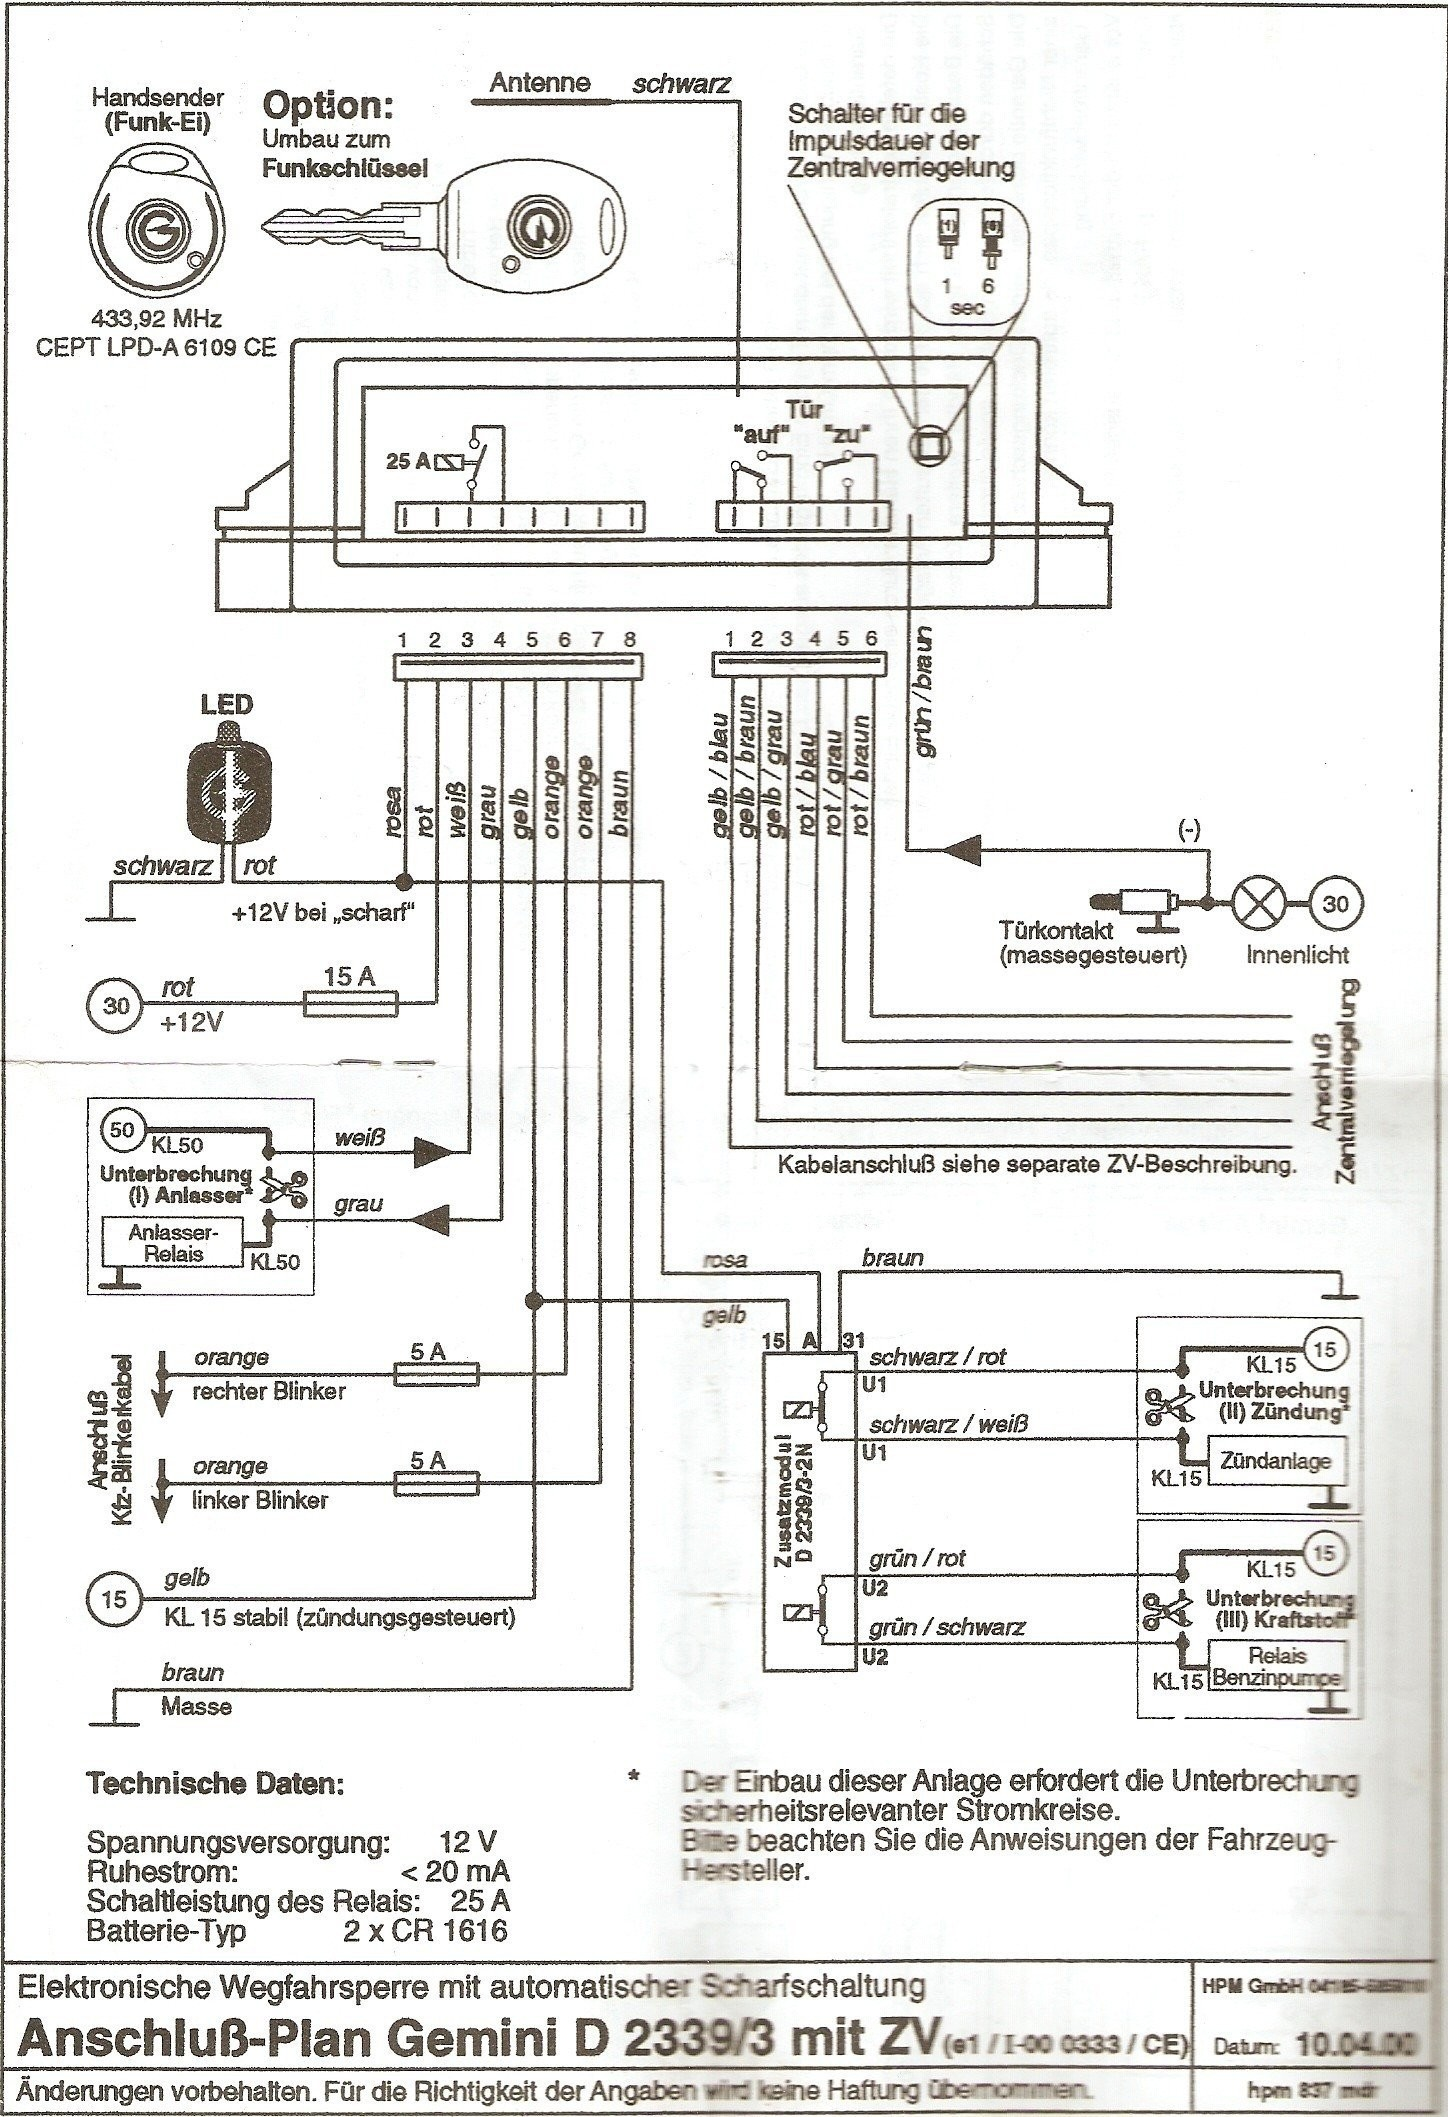 Viper V Wiring Diagram New Viper Xv Wiring Diagram Trusted Wiring Diagrams Of Viper V Wiring Diagram